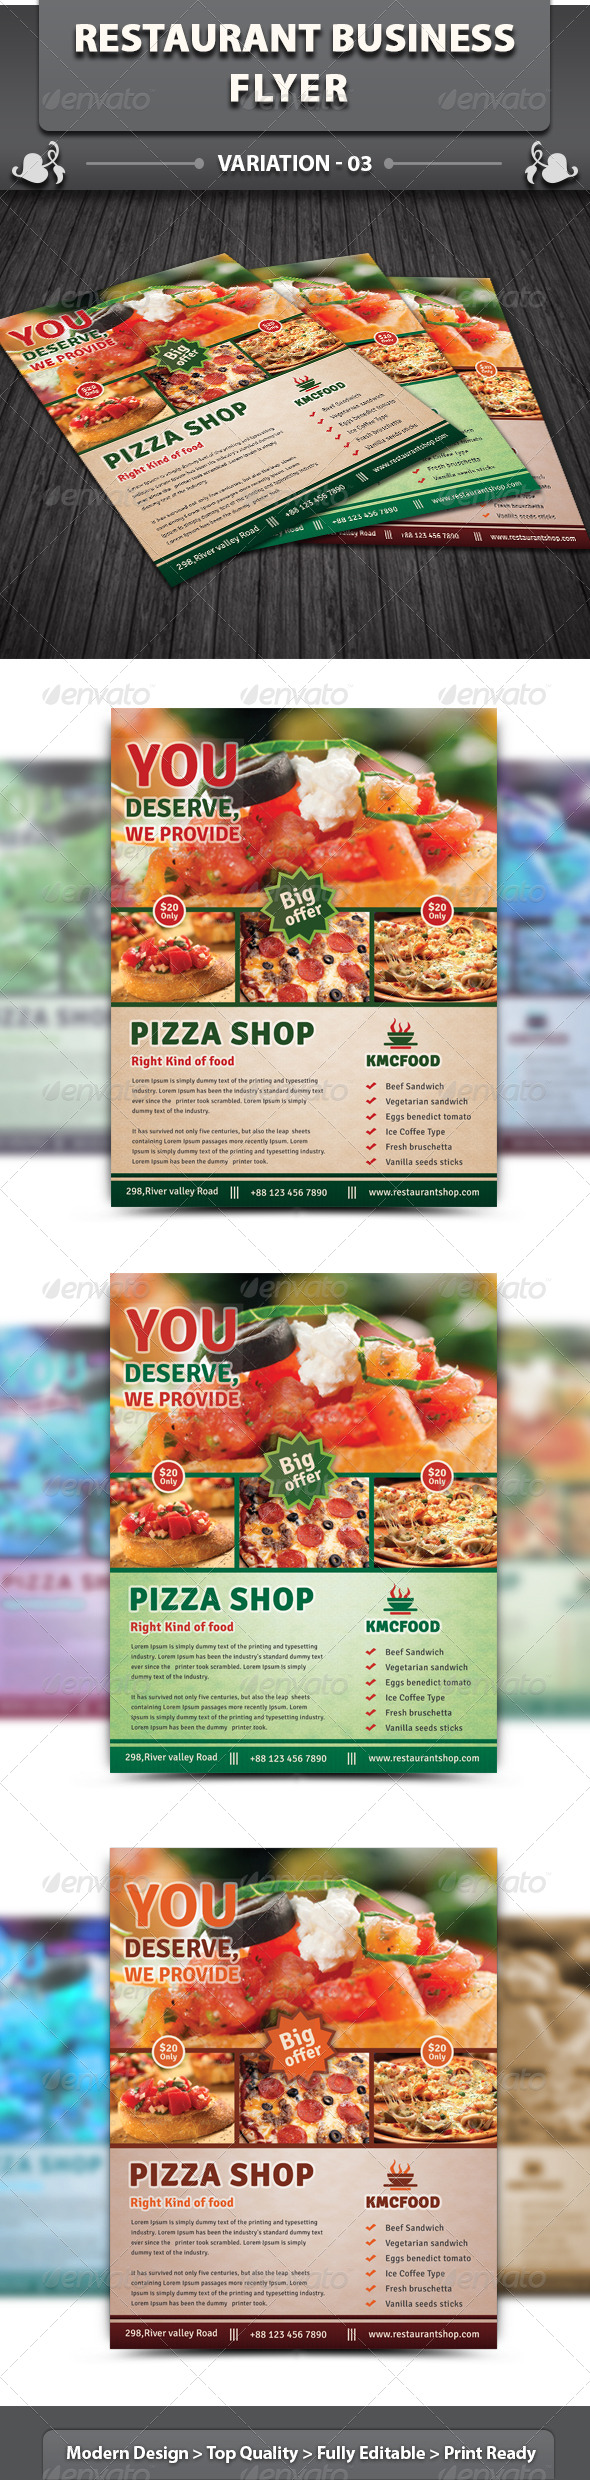 Restaurant Business Flyer | Volume 8 - Restaurant Flyers